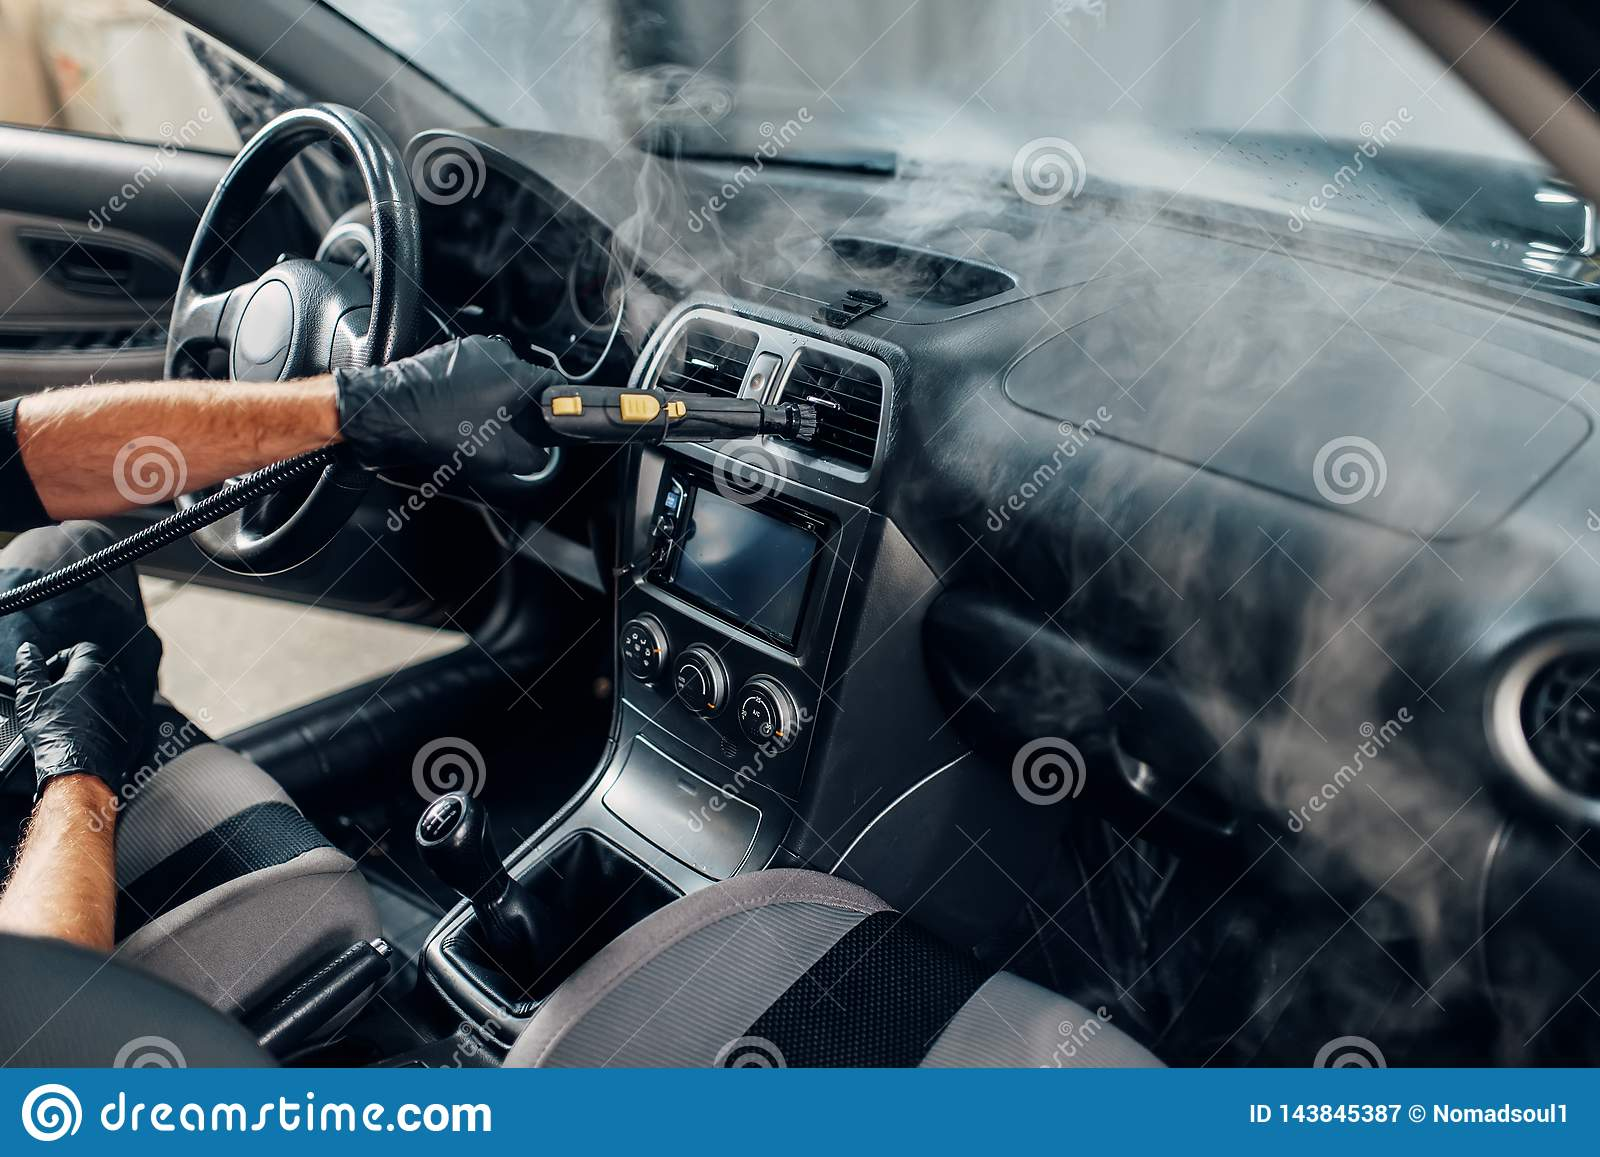 Steam Clean Car Interior >> Carwash Worker Cleans Salon With Steam Cleaner Stock Image